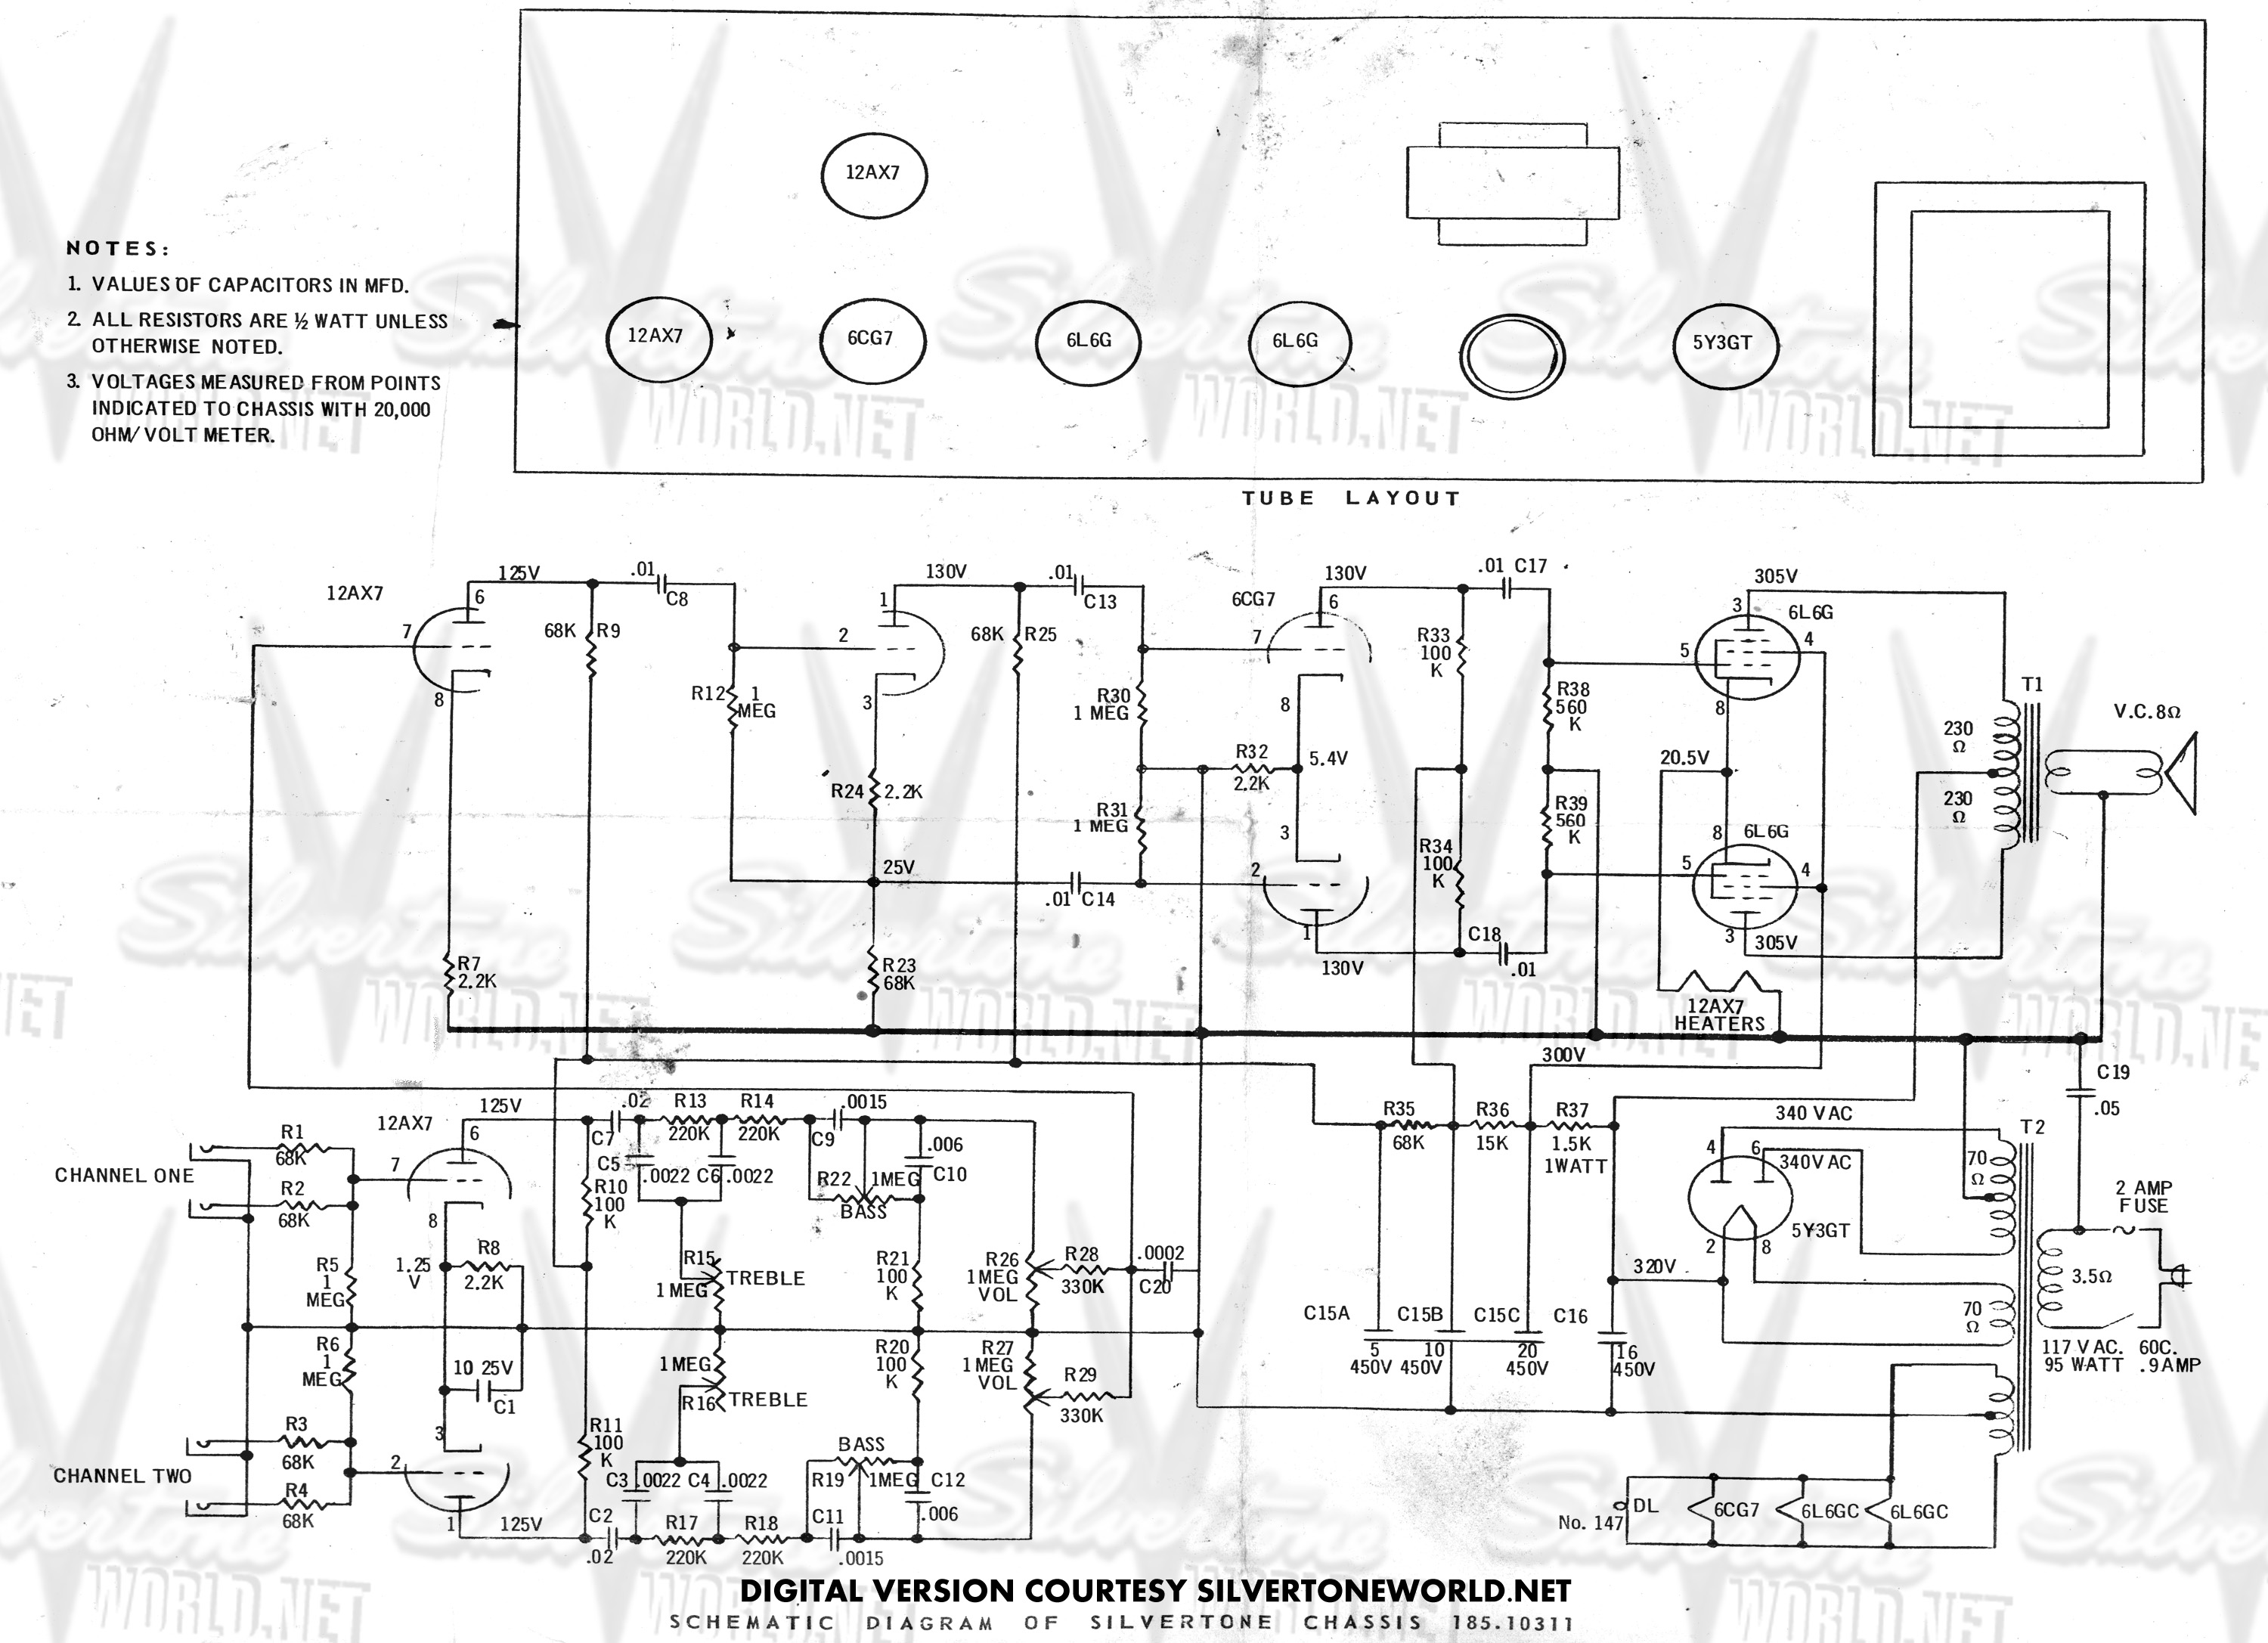 silvertone world division 57 schematics, manuals and publications Jbl Wiring Diagram silvertone wiring diagram  #25 Pressure Switch Wiring Diagram